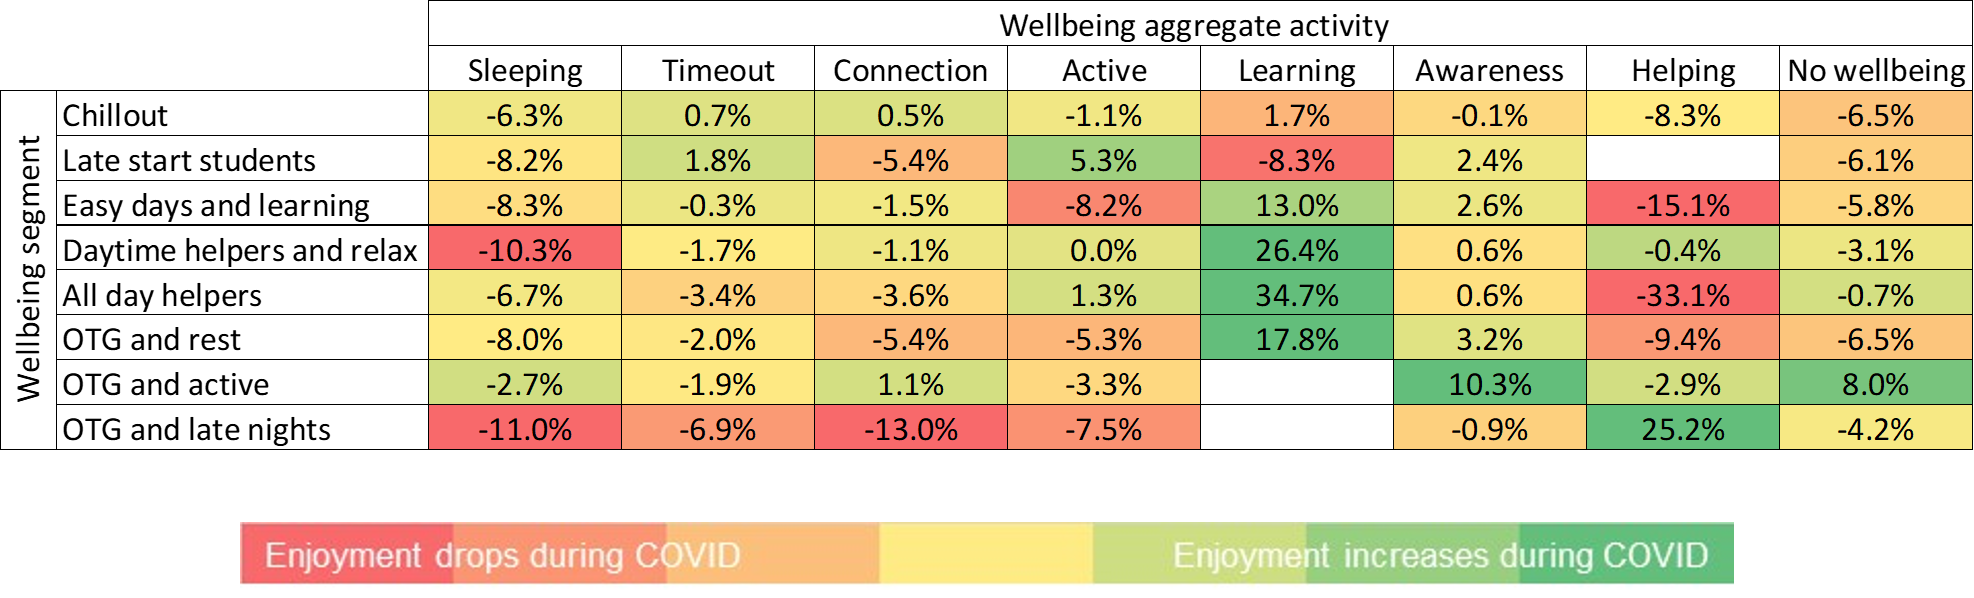 Table showing the enjoyment changes across segment and activity group.